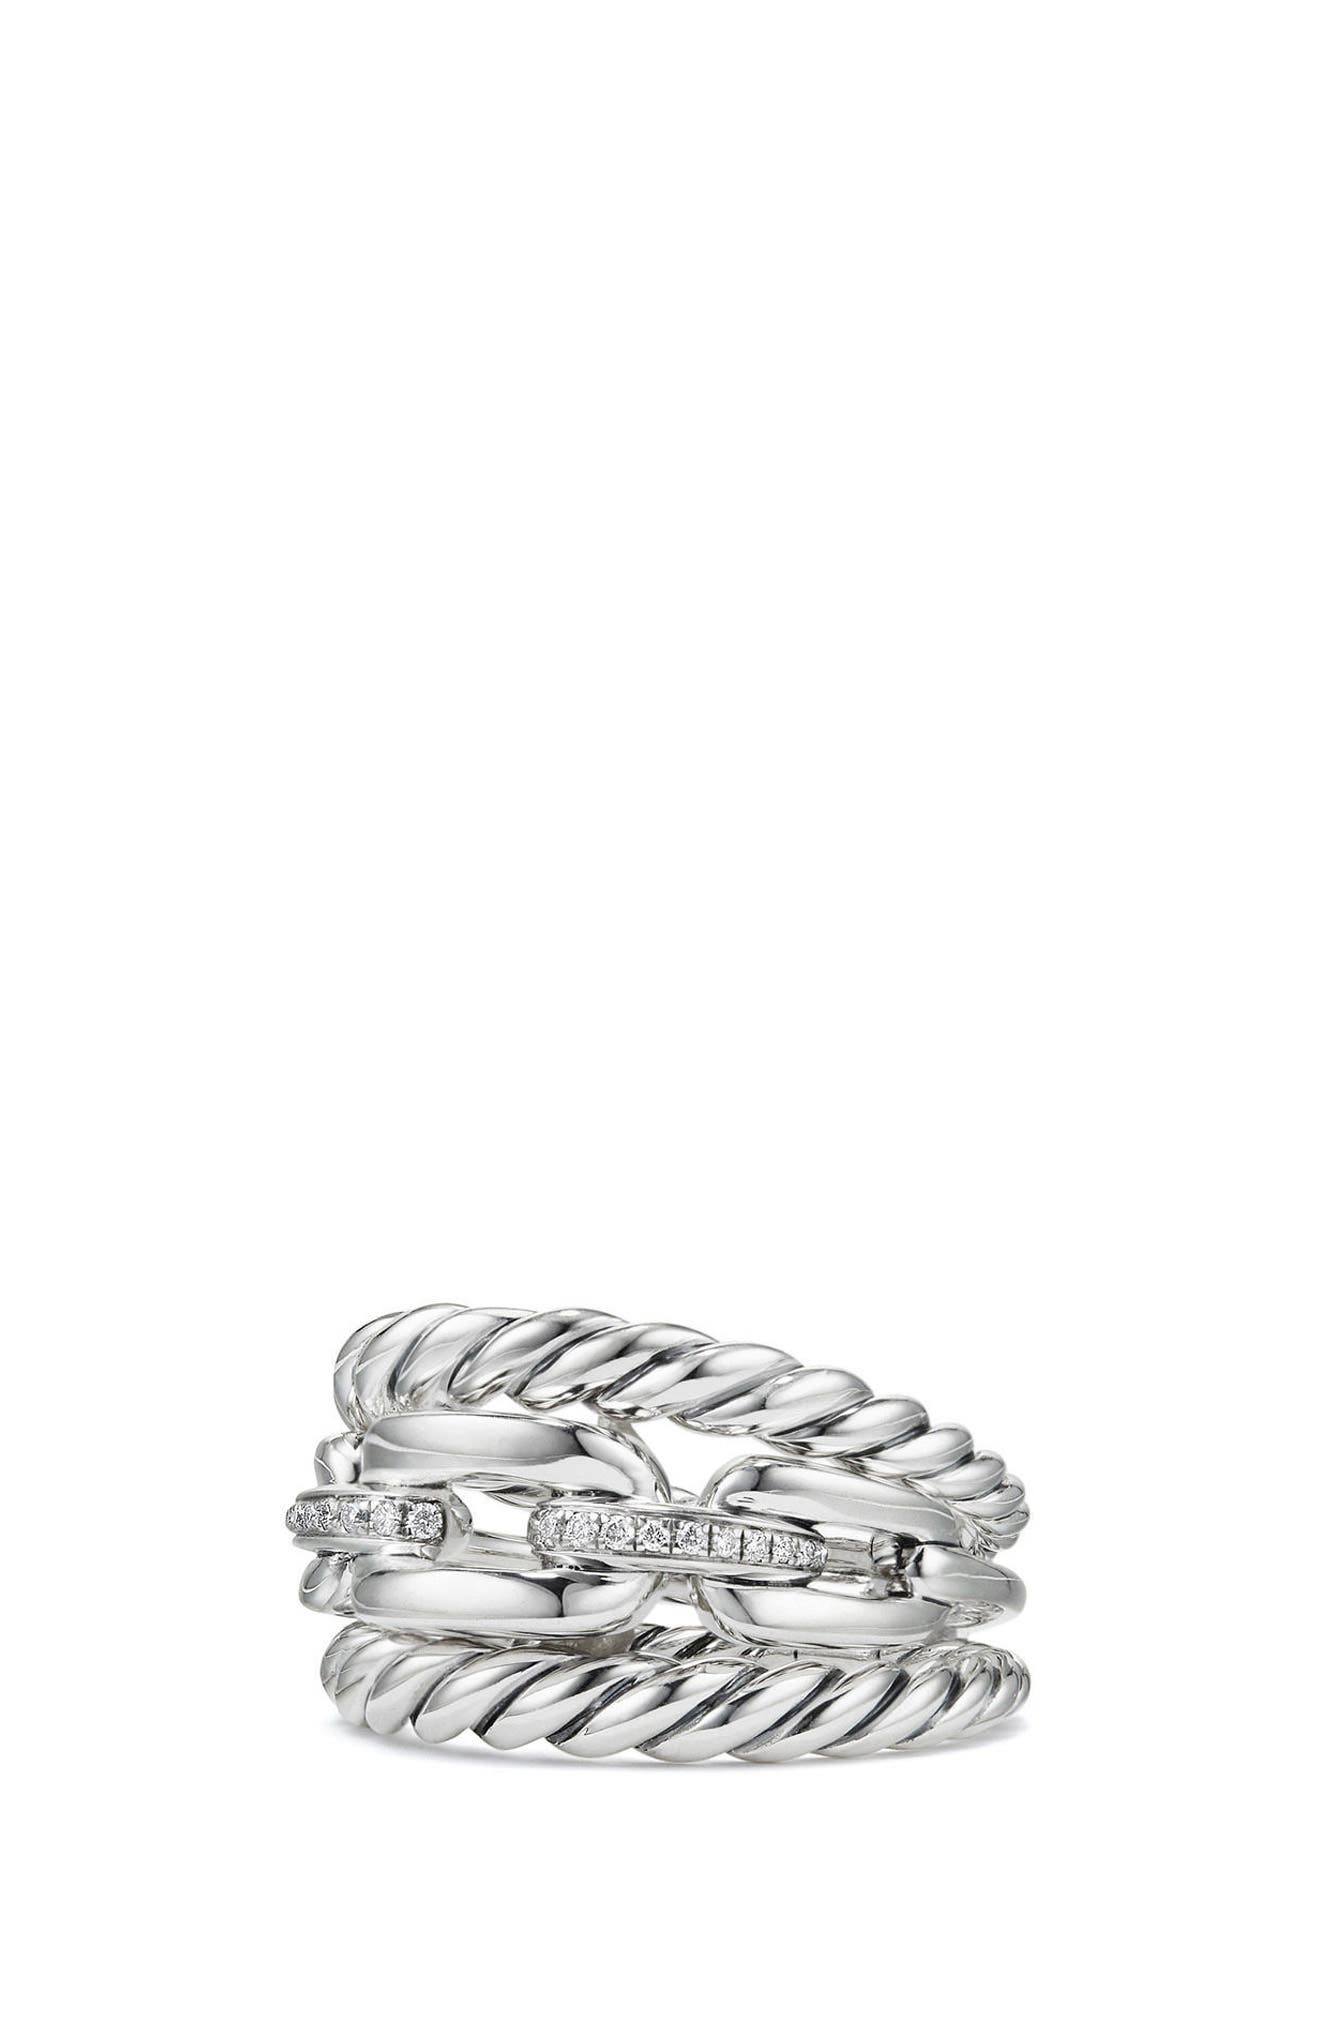 DAVID YURMAN Wellesley Three-Row Ring with Diamonds, Main, color, SILVER